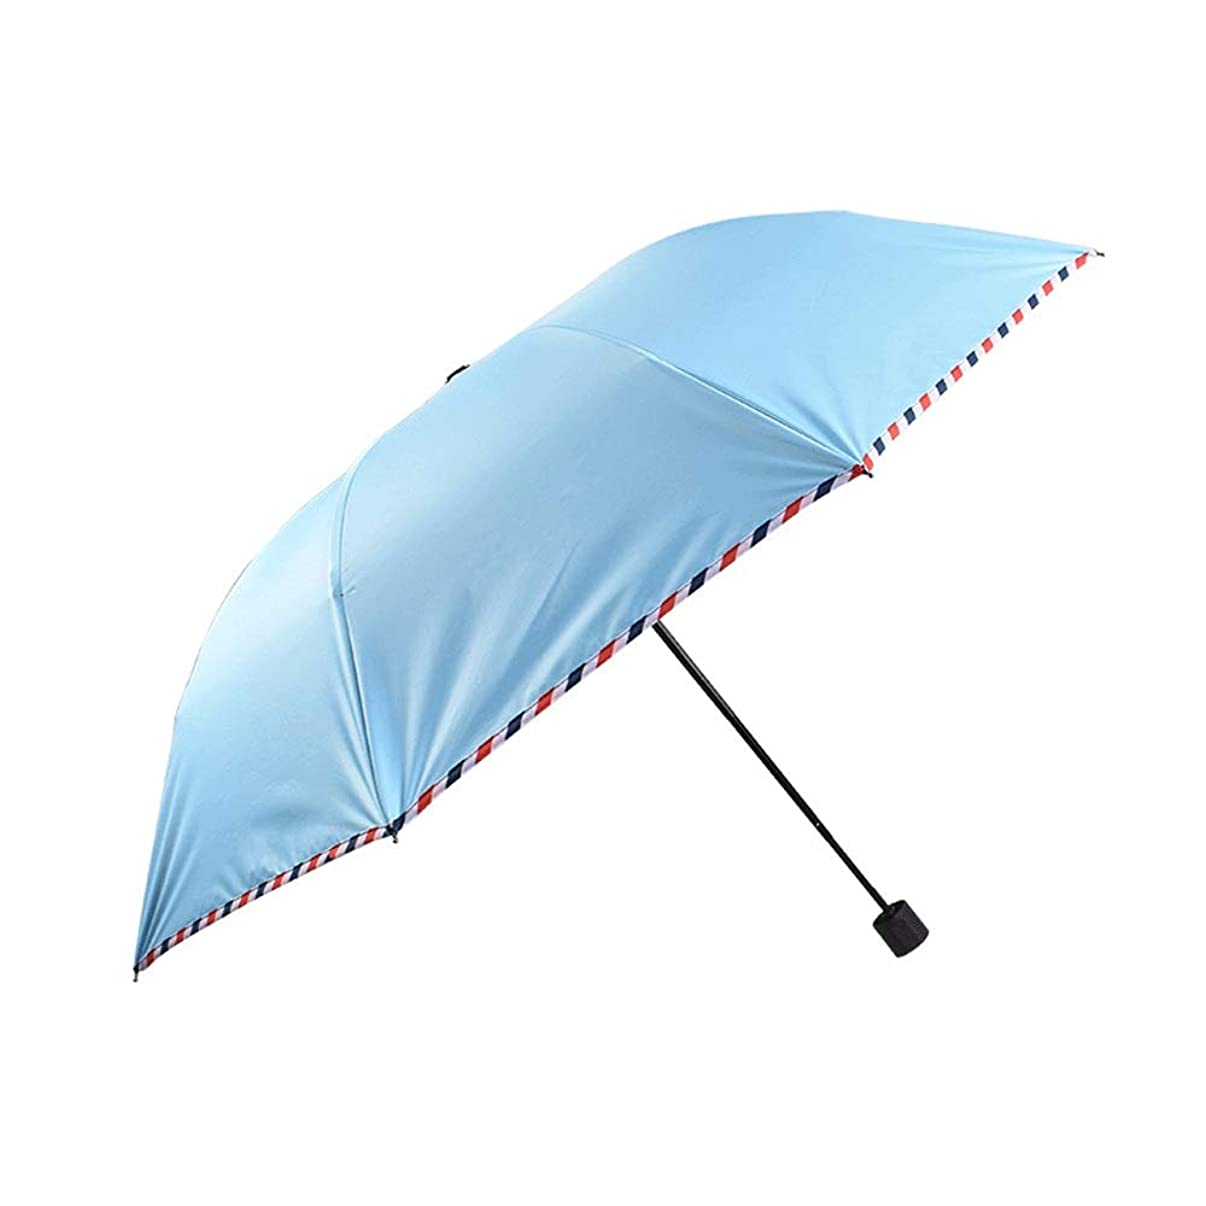 Classic Quality Windproof Handle Umbrella,Portable Lightweight Outdoor Golf Umbrella,Strengthen The Portable Windproof Frame for Men and Women (Color : Light Blue)